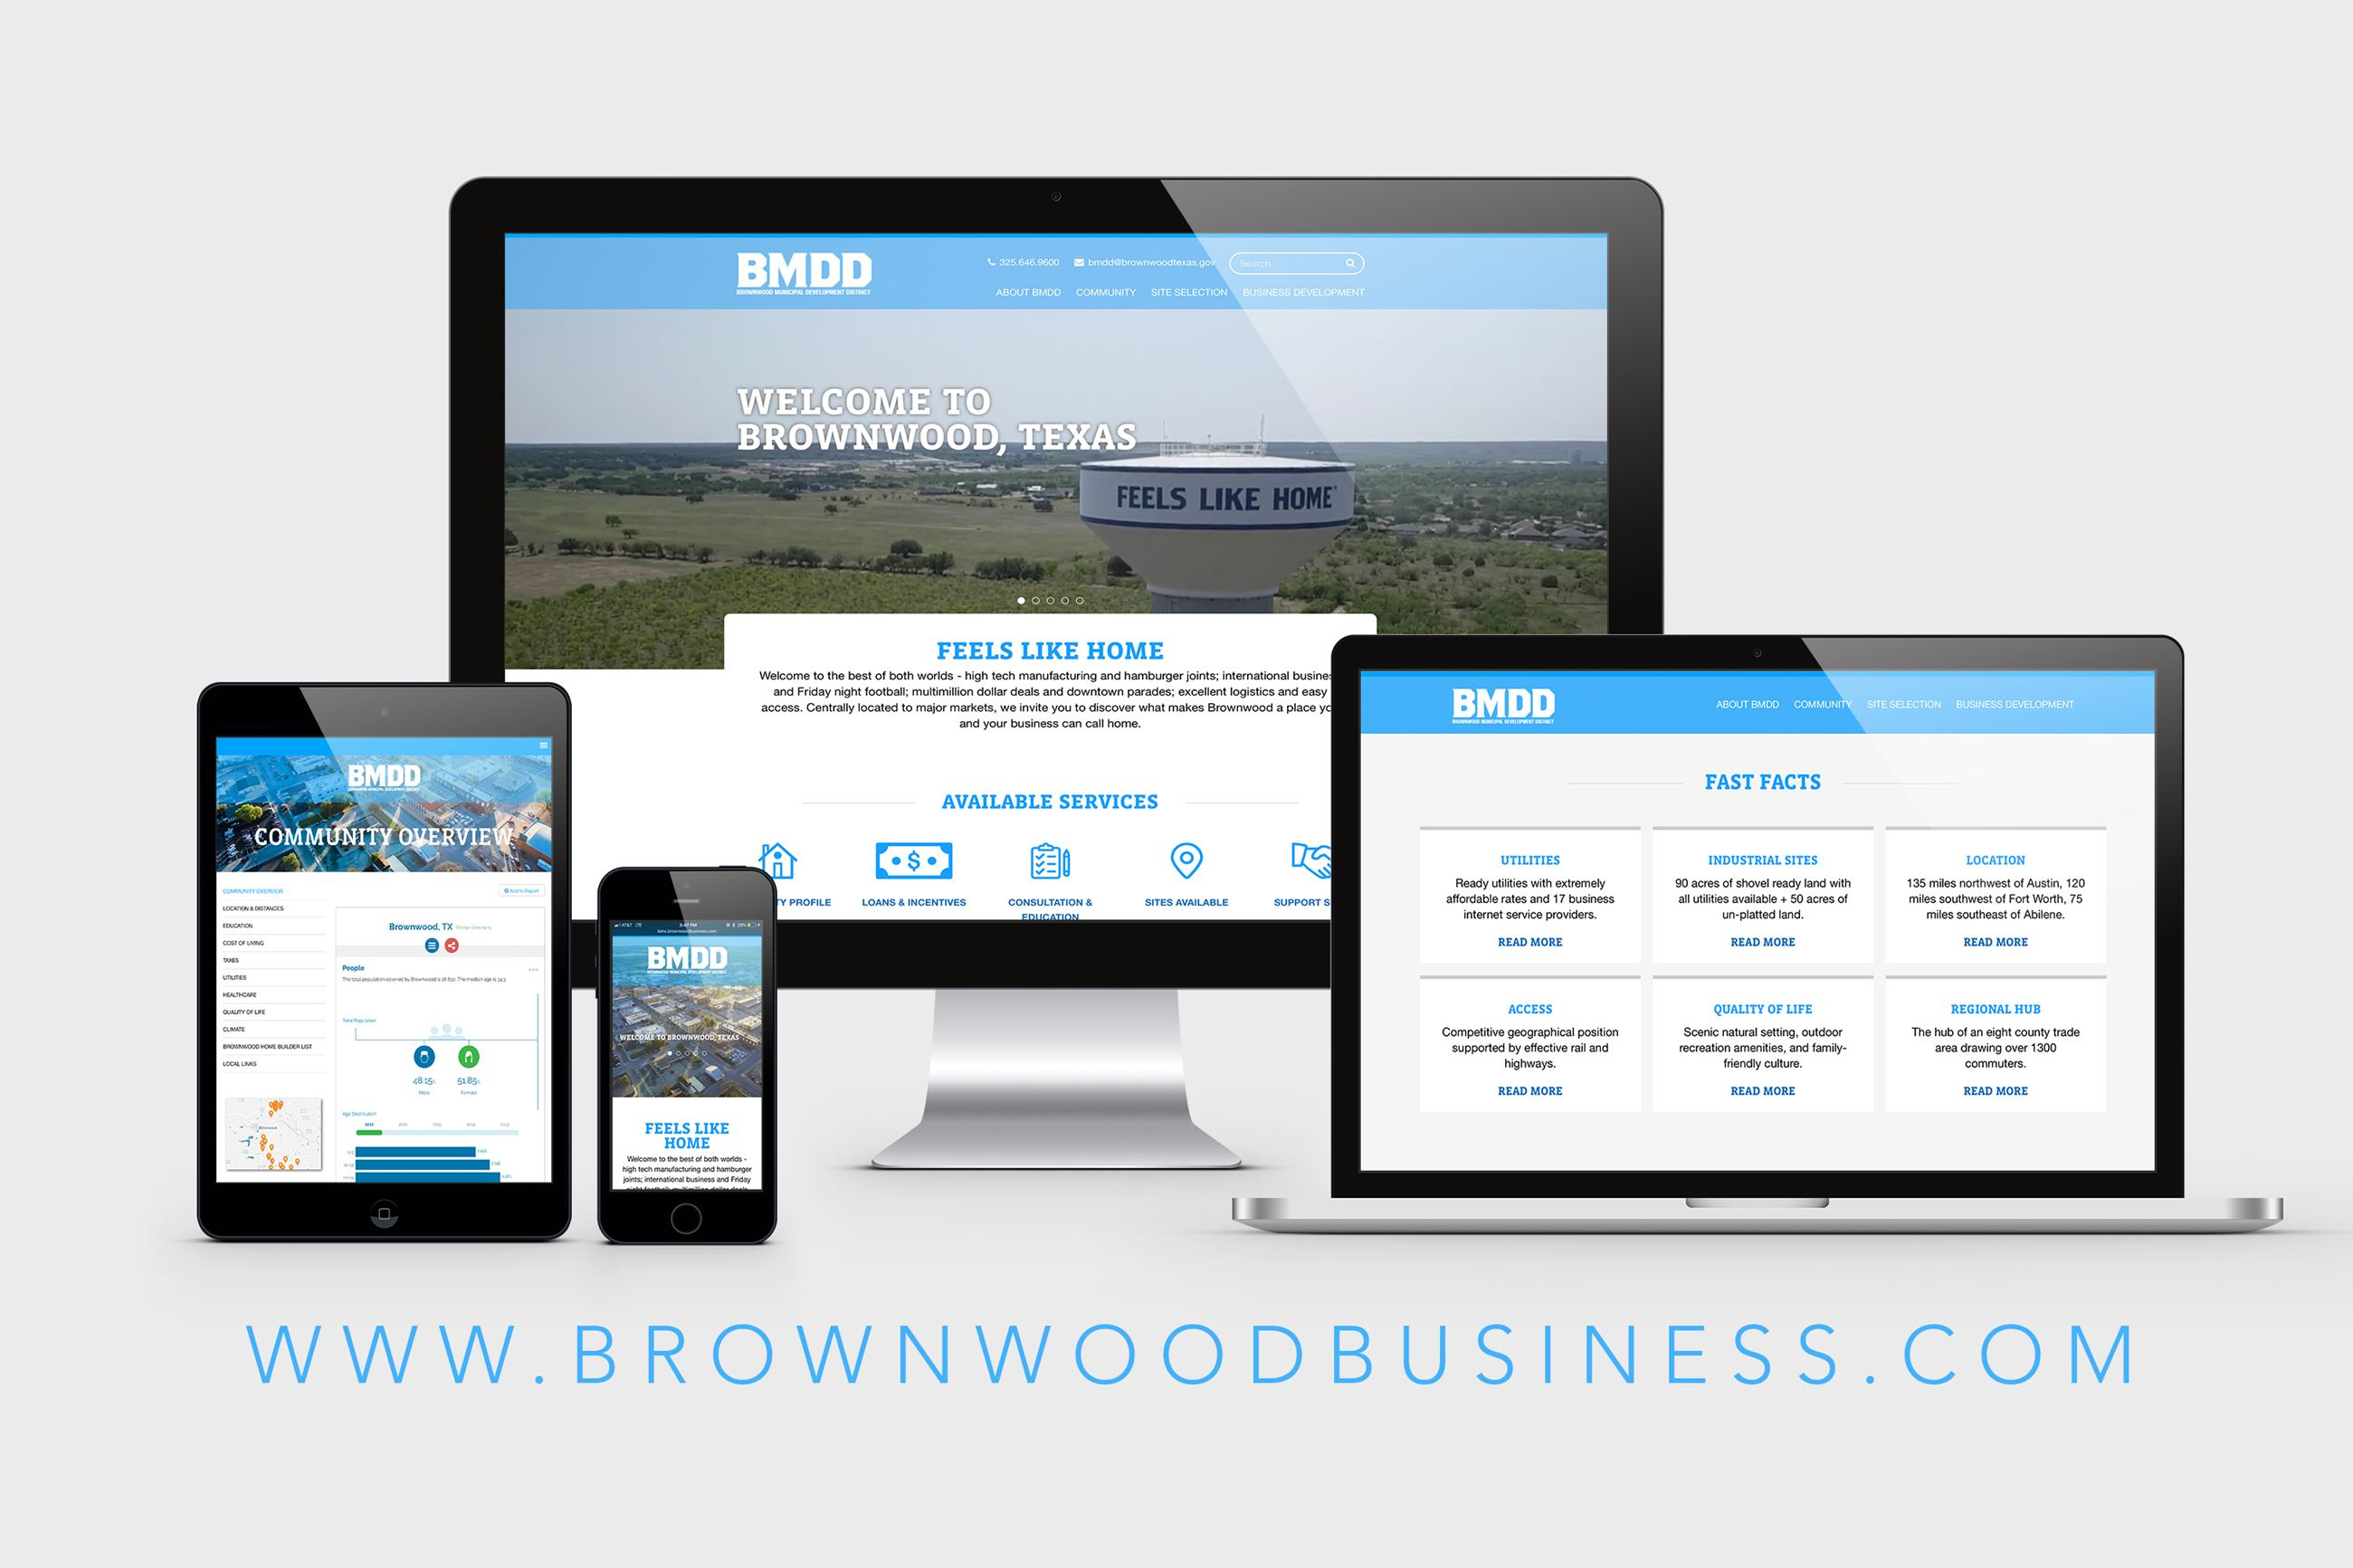 BrownwoodBusiness.com